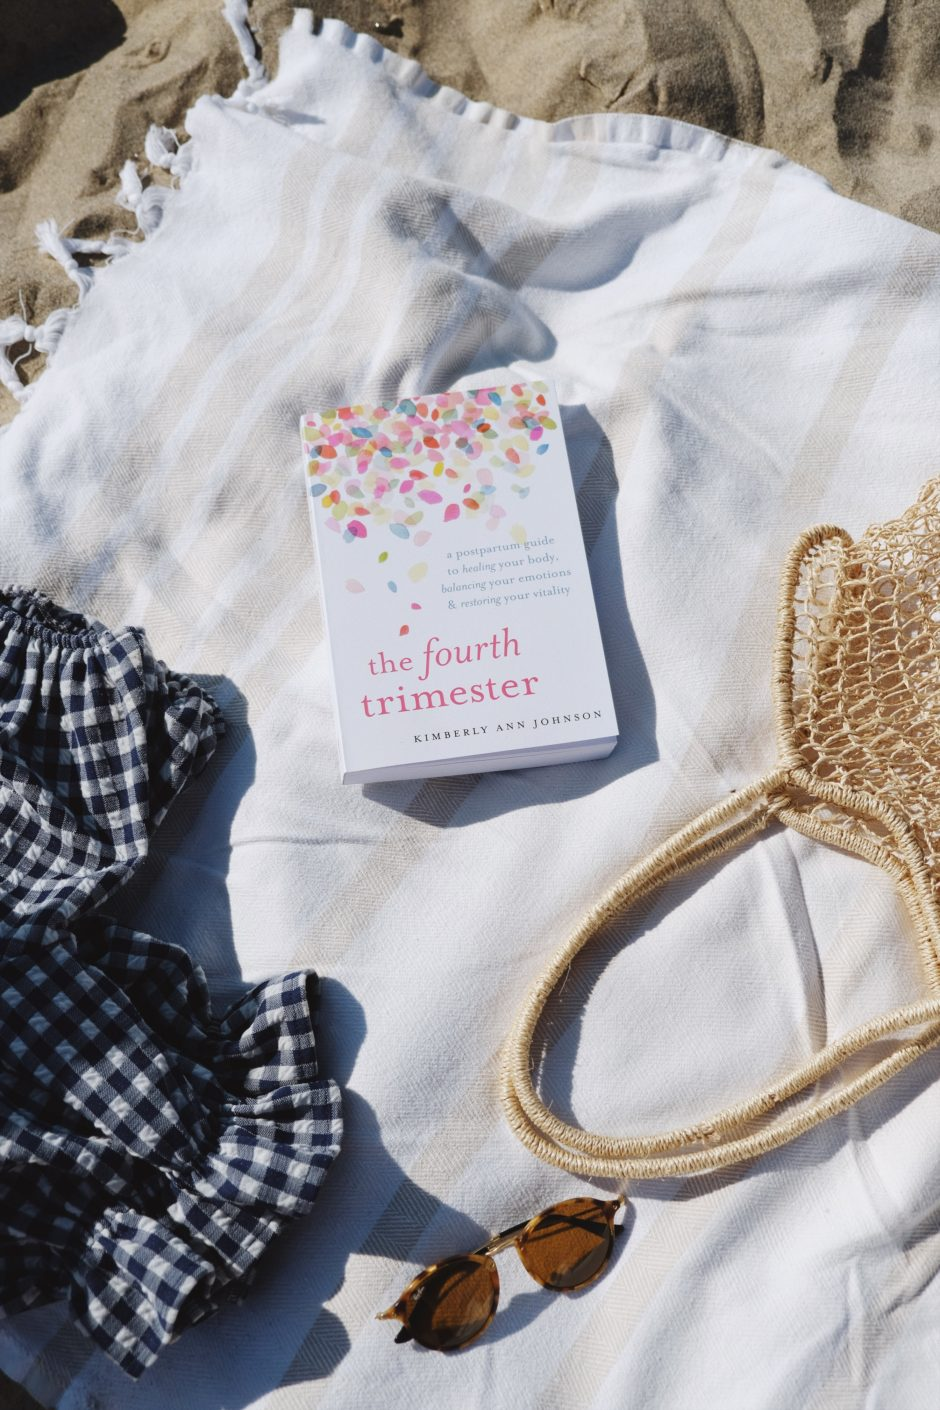 HANNAH SHELBY: Labor Day Weekend + Pregnancy Beach Reads